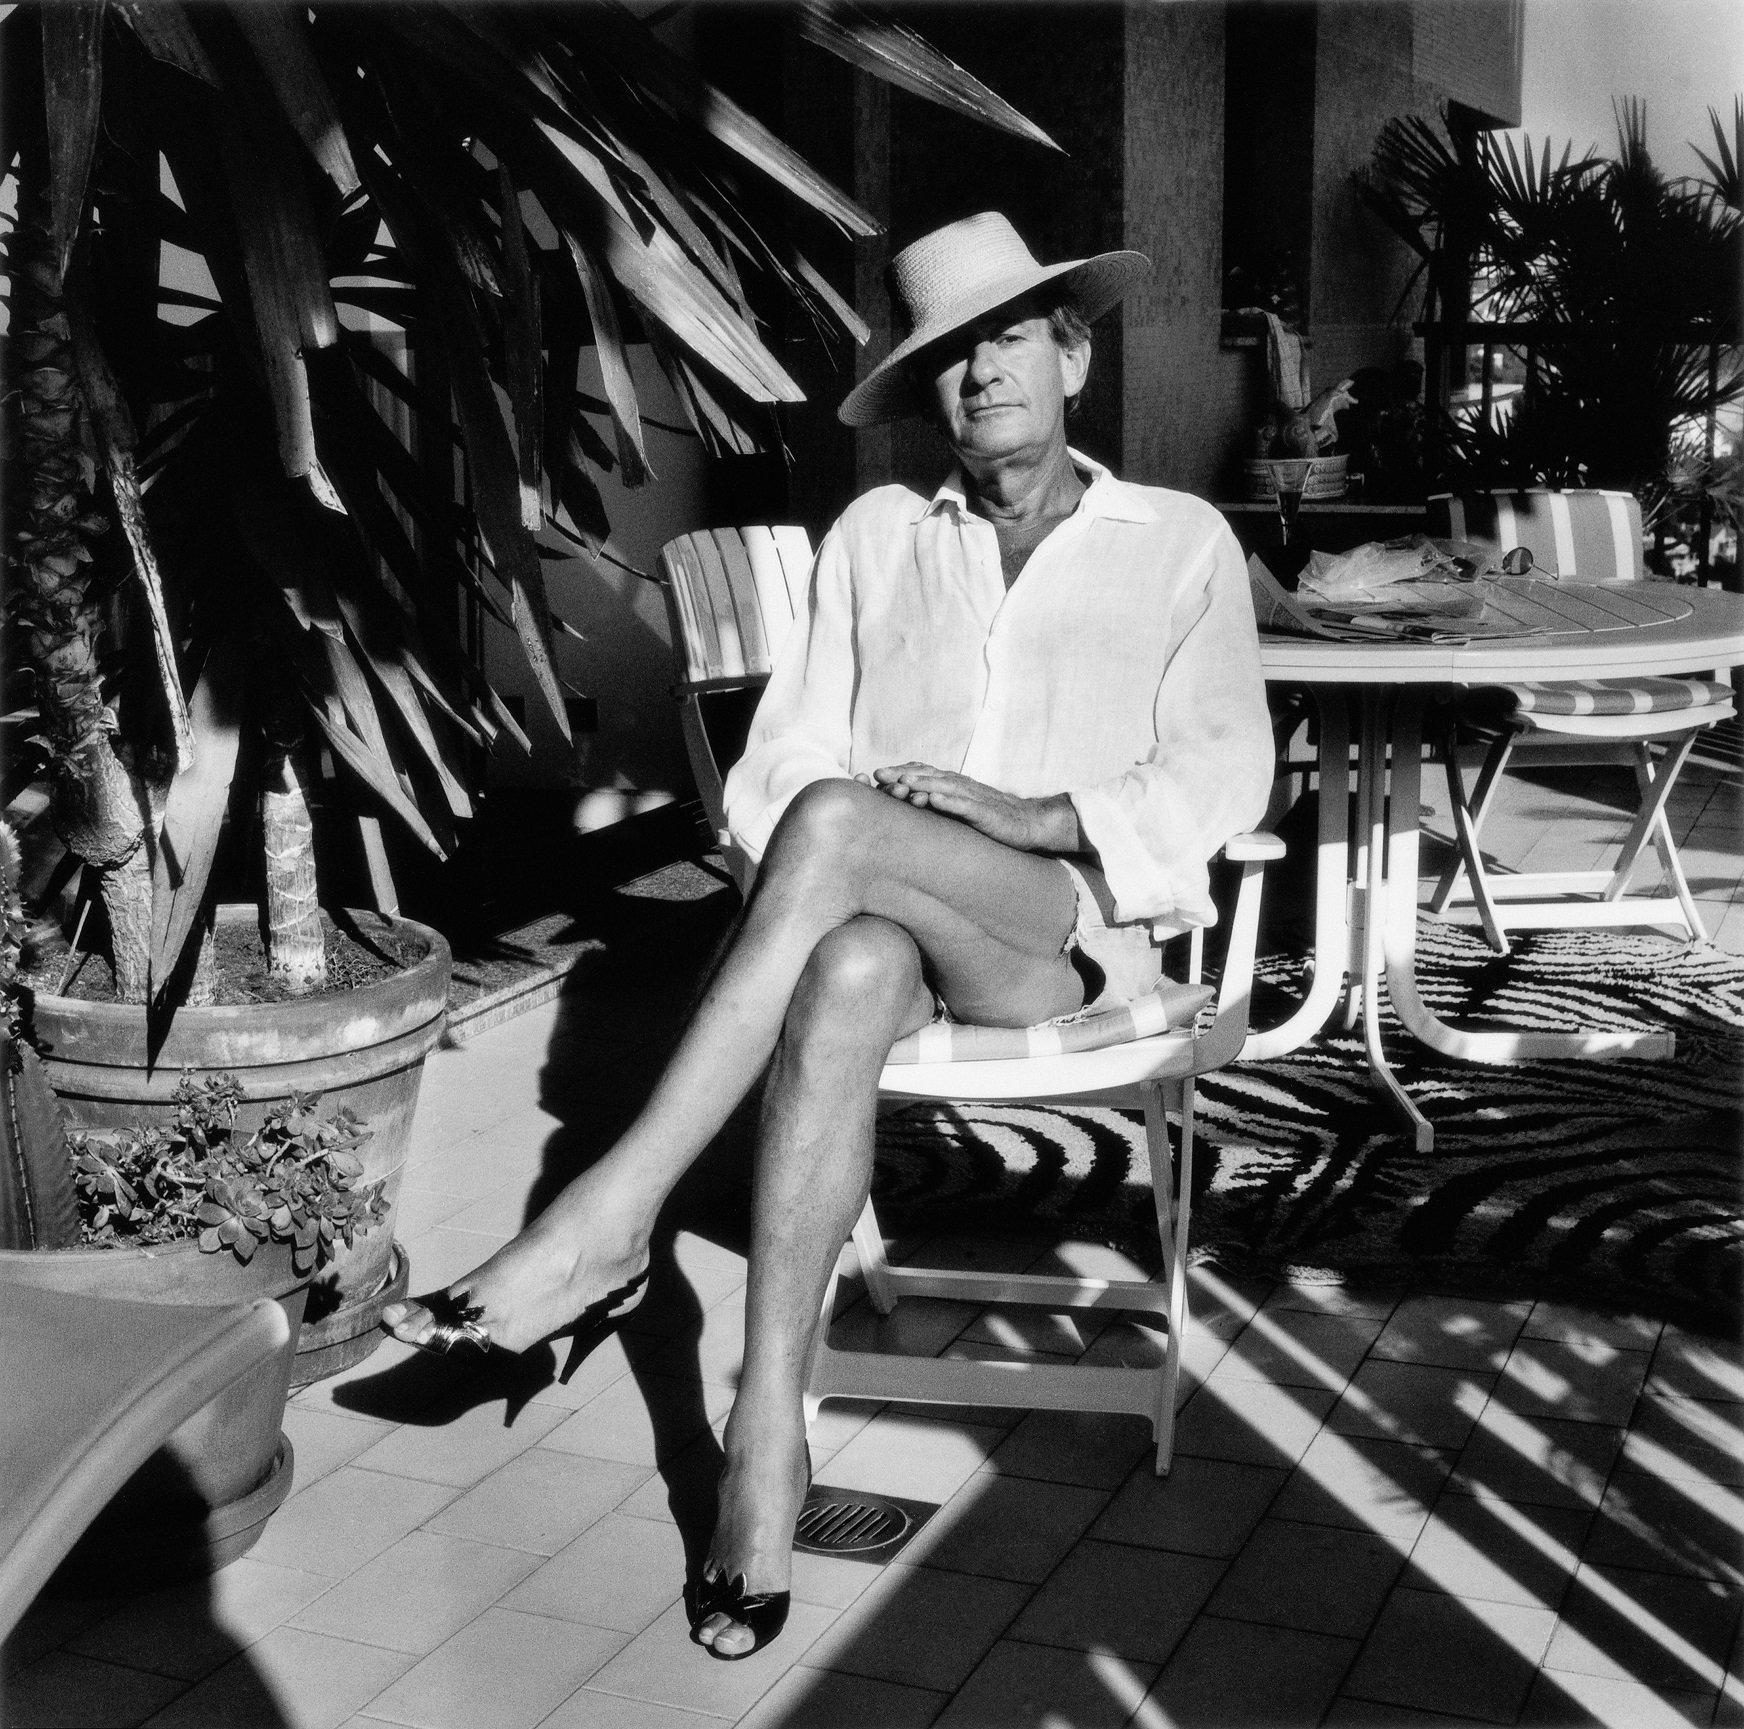 HELMUT NEWTON_(c) Alice Springs - Helmut Newton Foundation_light